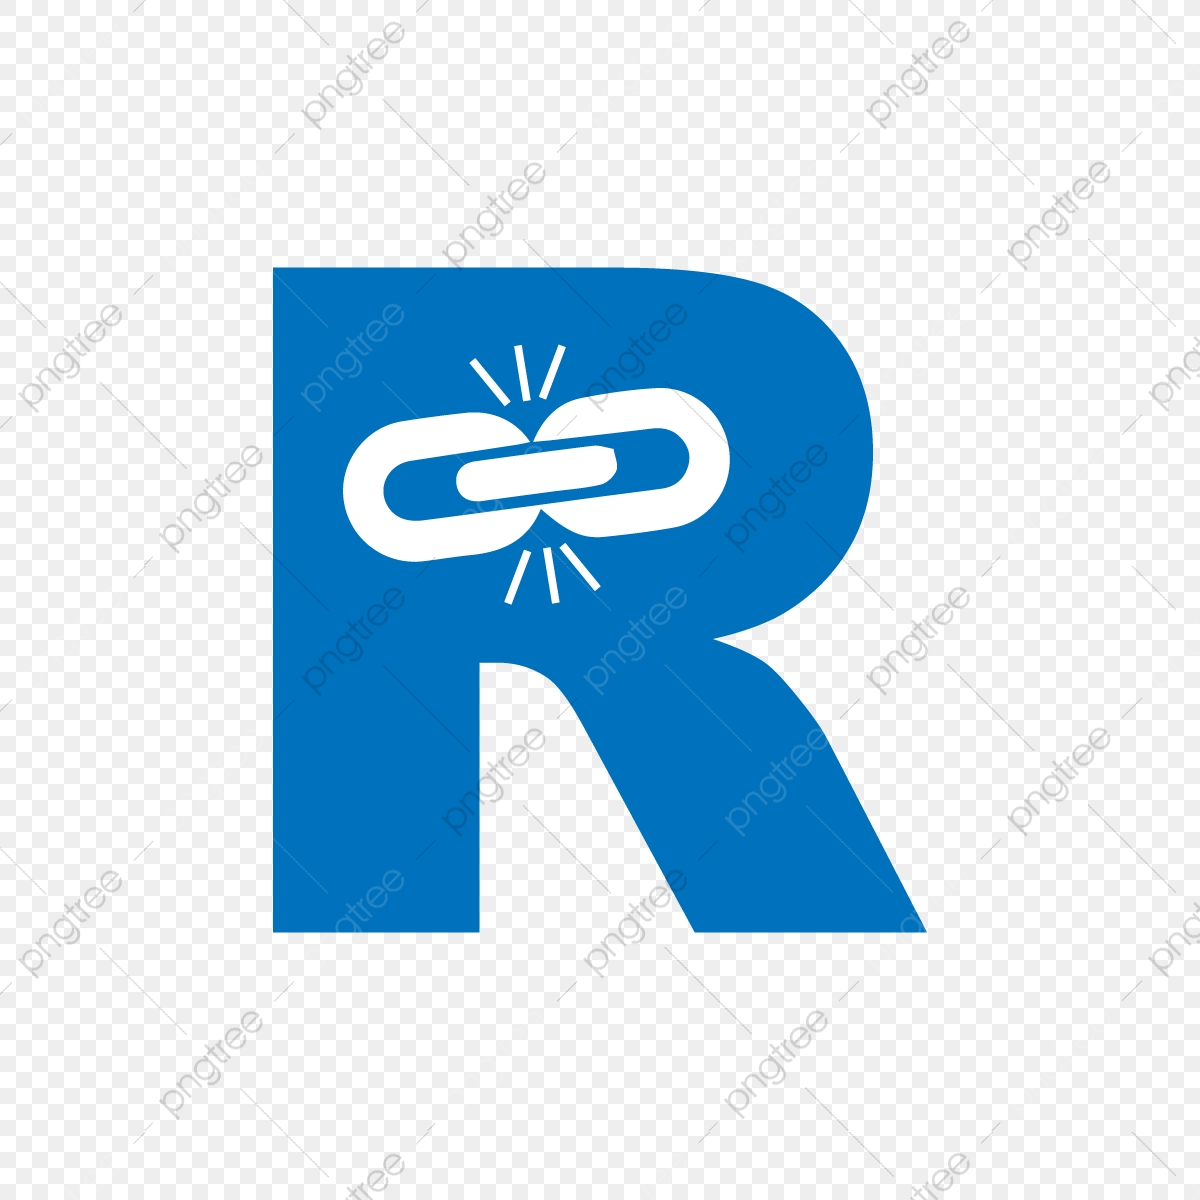 Link R Letter, R Letter, Link R, Link PNG and Vector with